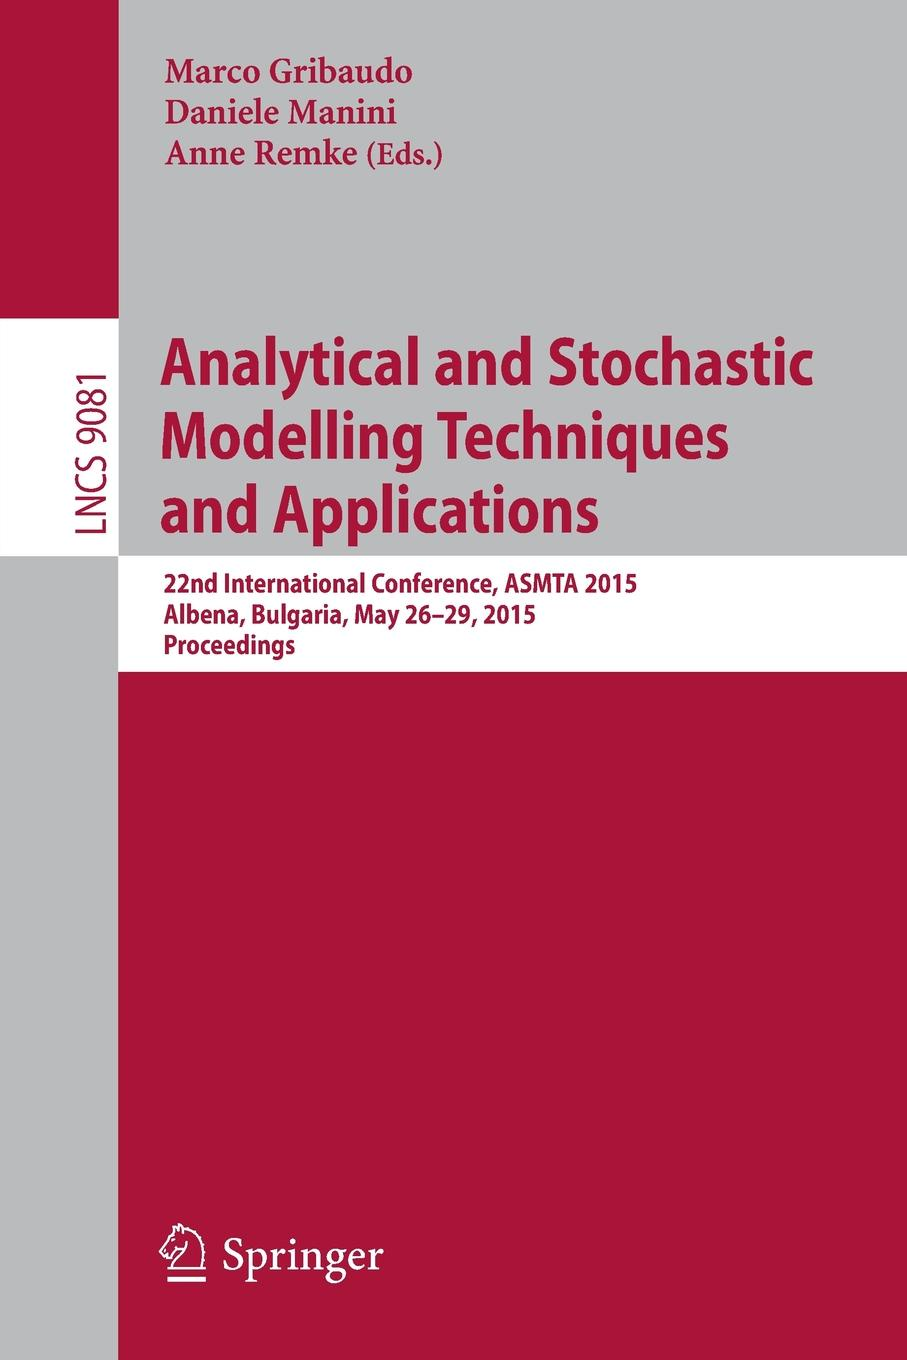 Analytical and Stochastic Modelling Techniques and Applications. 22nd International Conference, ASMTA 2015, Albena, Bulgaria, May 26-29, 2015. Proceedings